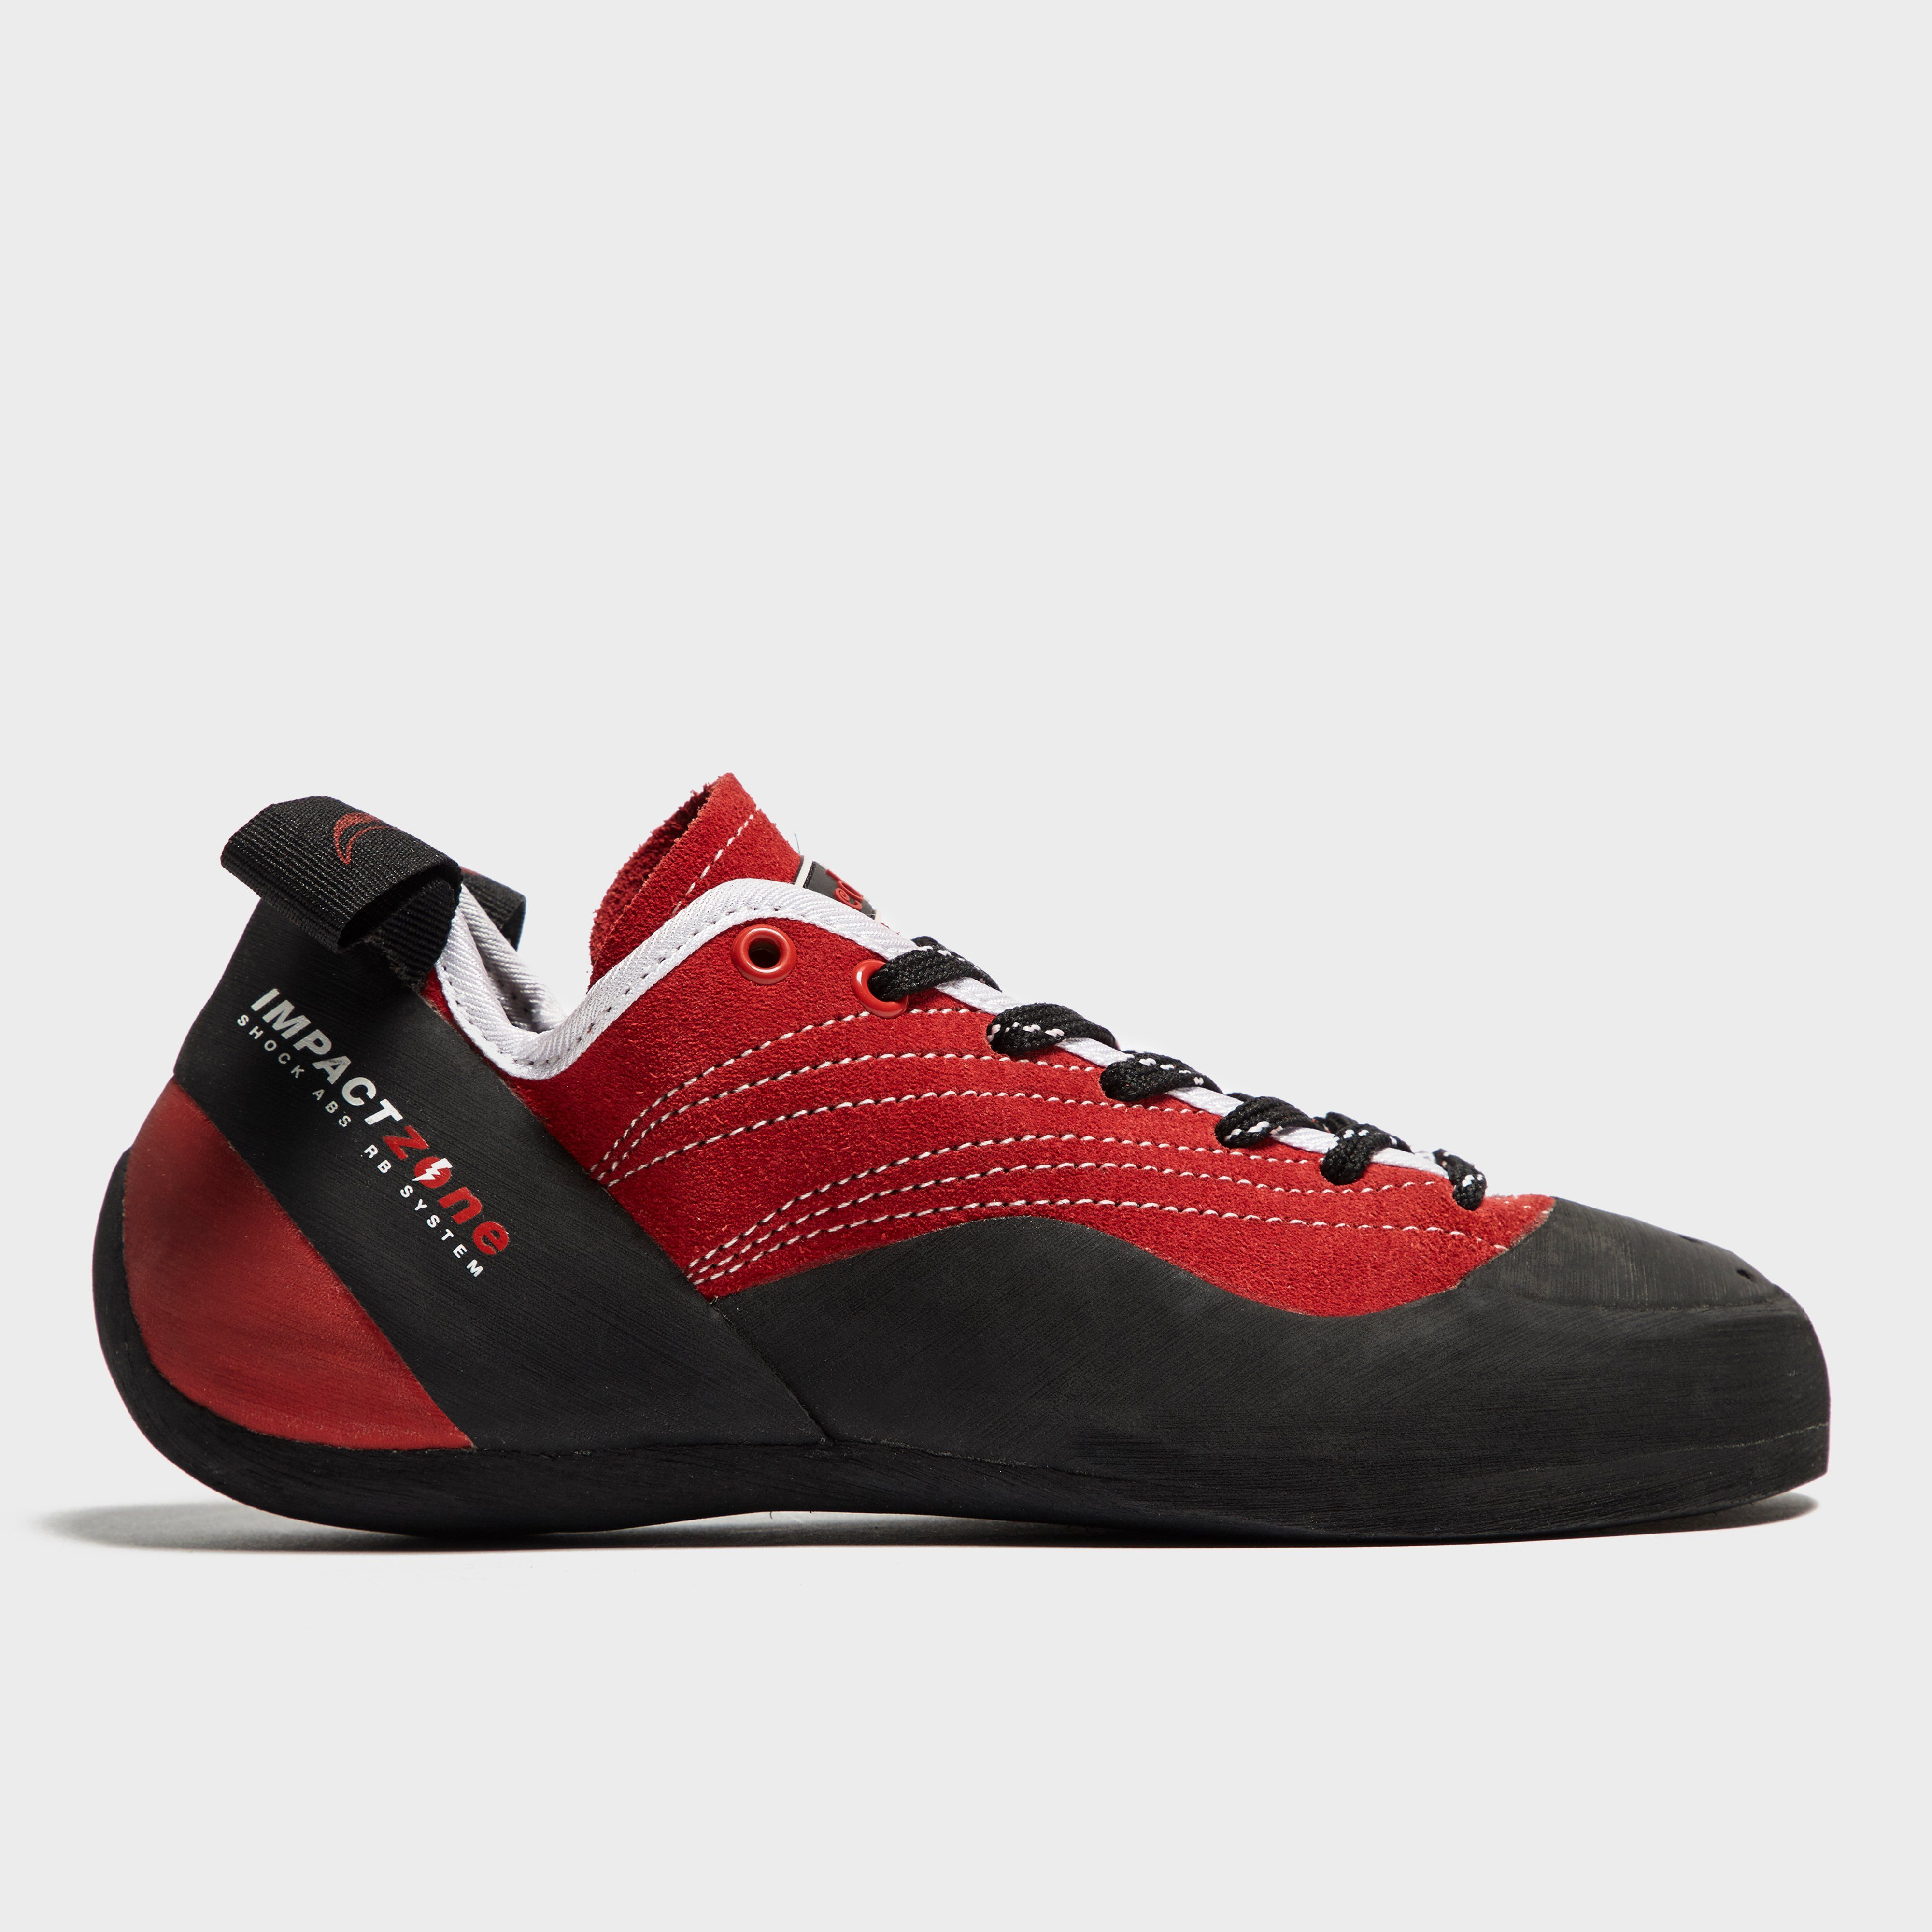 RED CHILI Sausalito IZ climbing Shoe